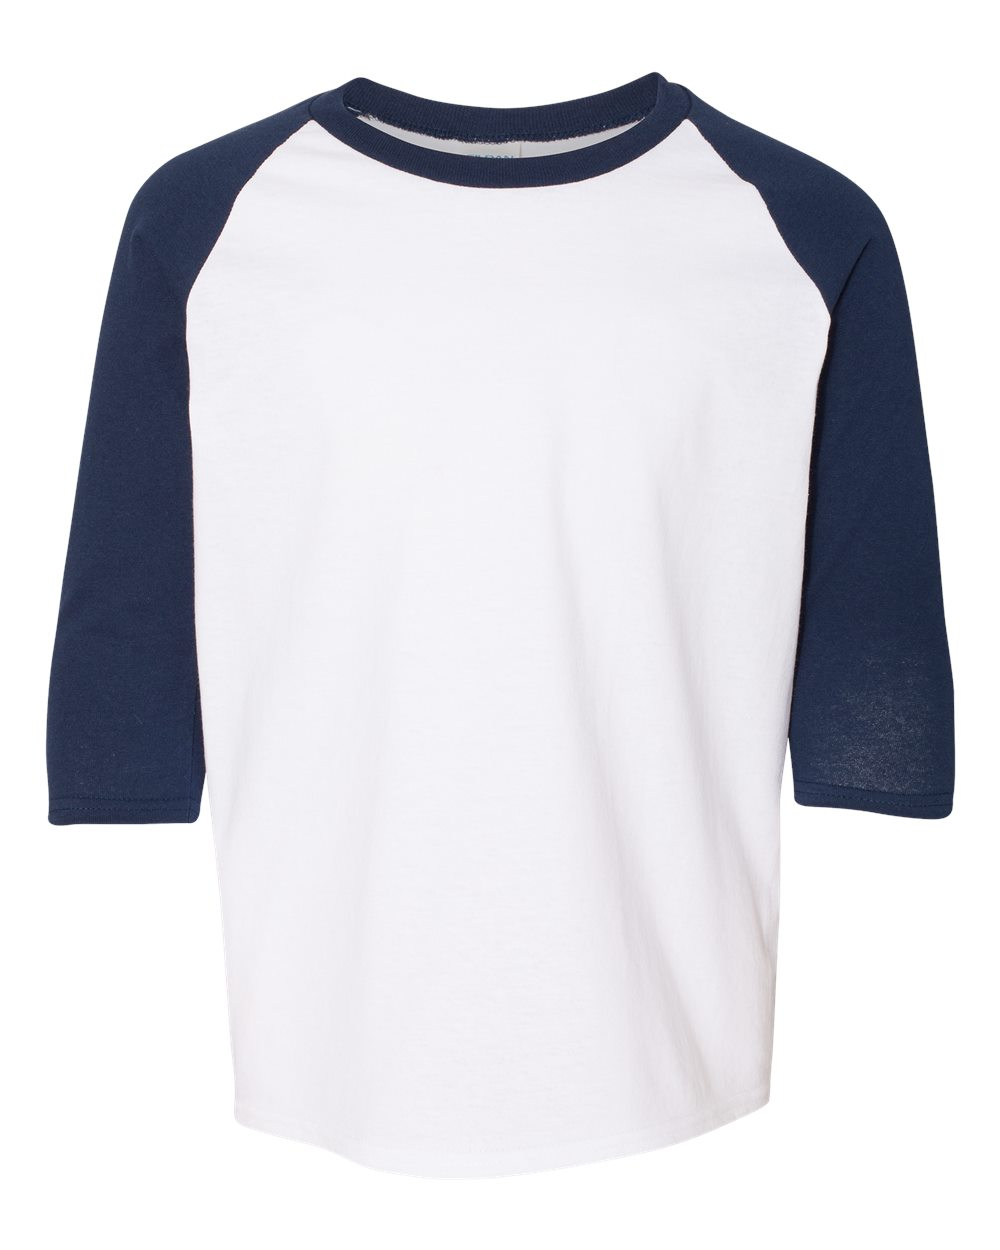 Youth Heavy Cotton™ 5.3 oz. 3/4-Raglan Sleev